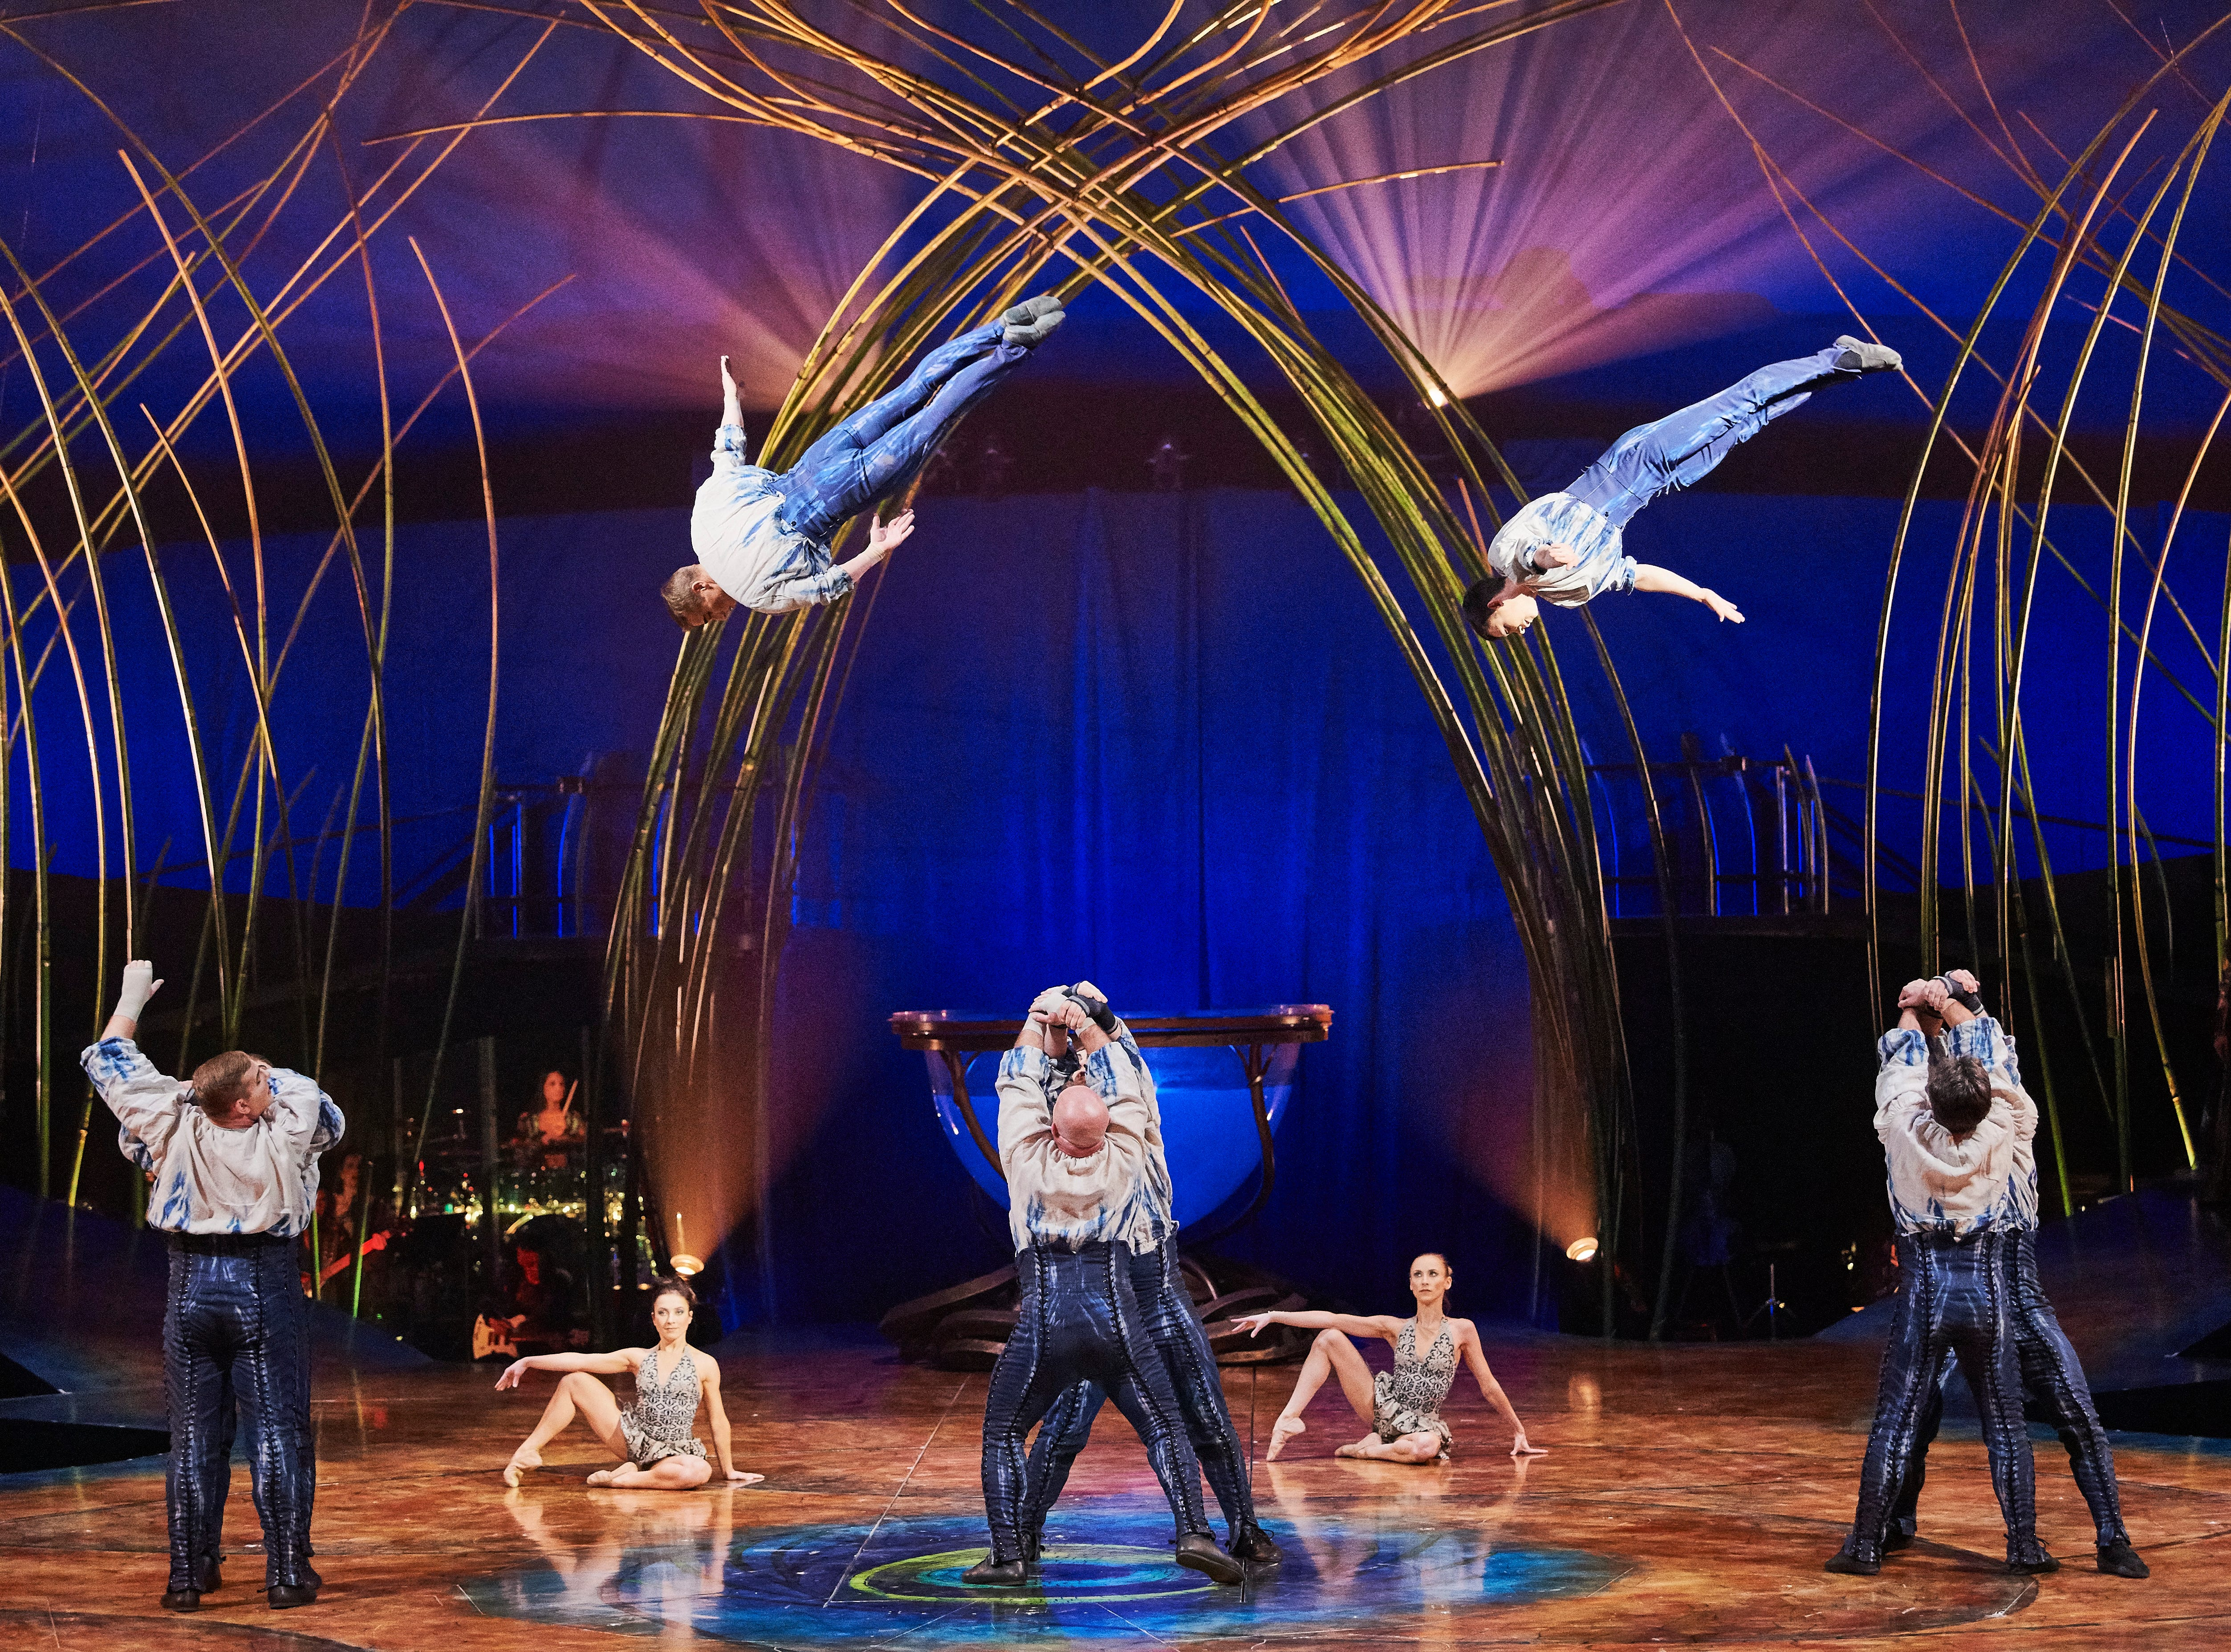 Cast members perform an acrobatic celebration where the porters interlock their arms and hands to create platforms, from which the flyers take-off and perform aerial tricks.